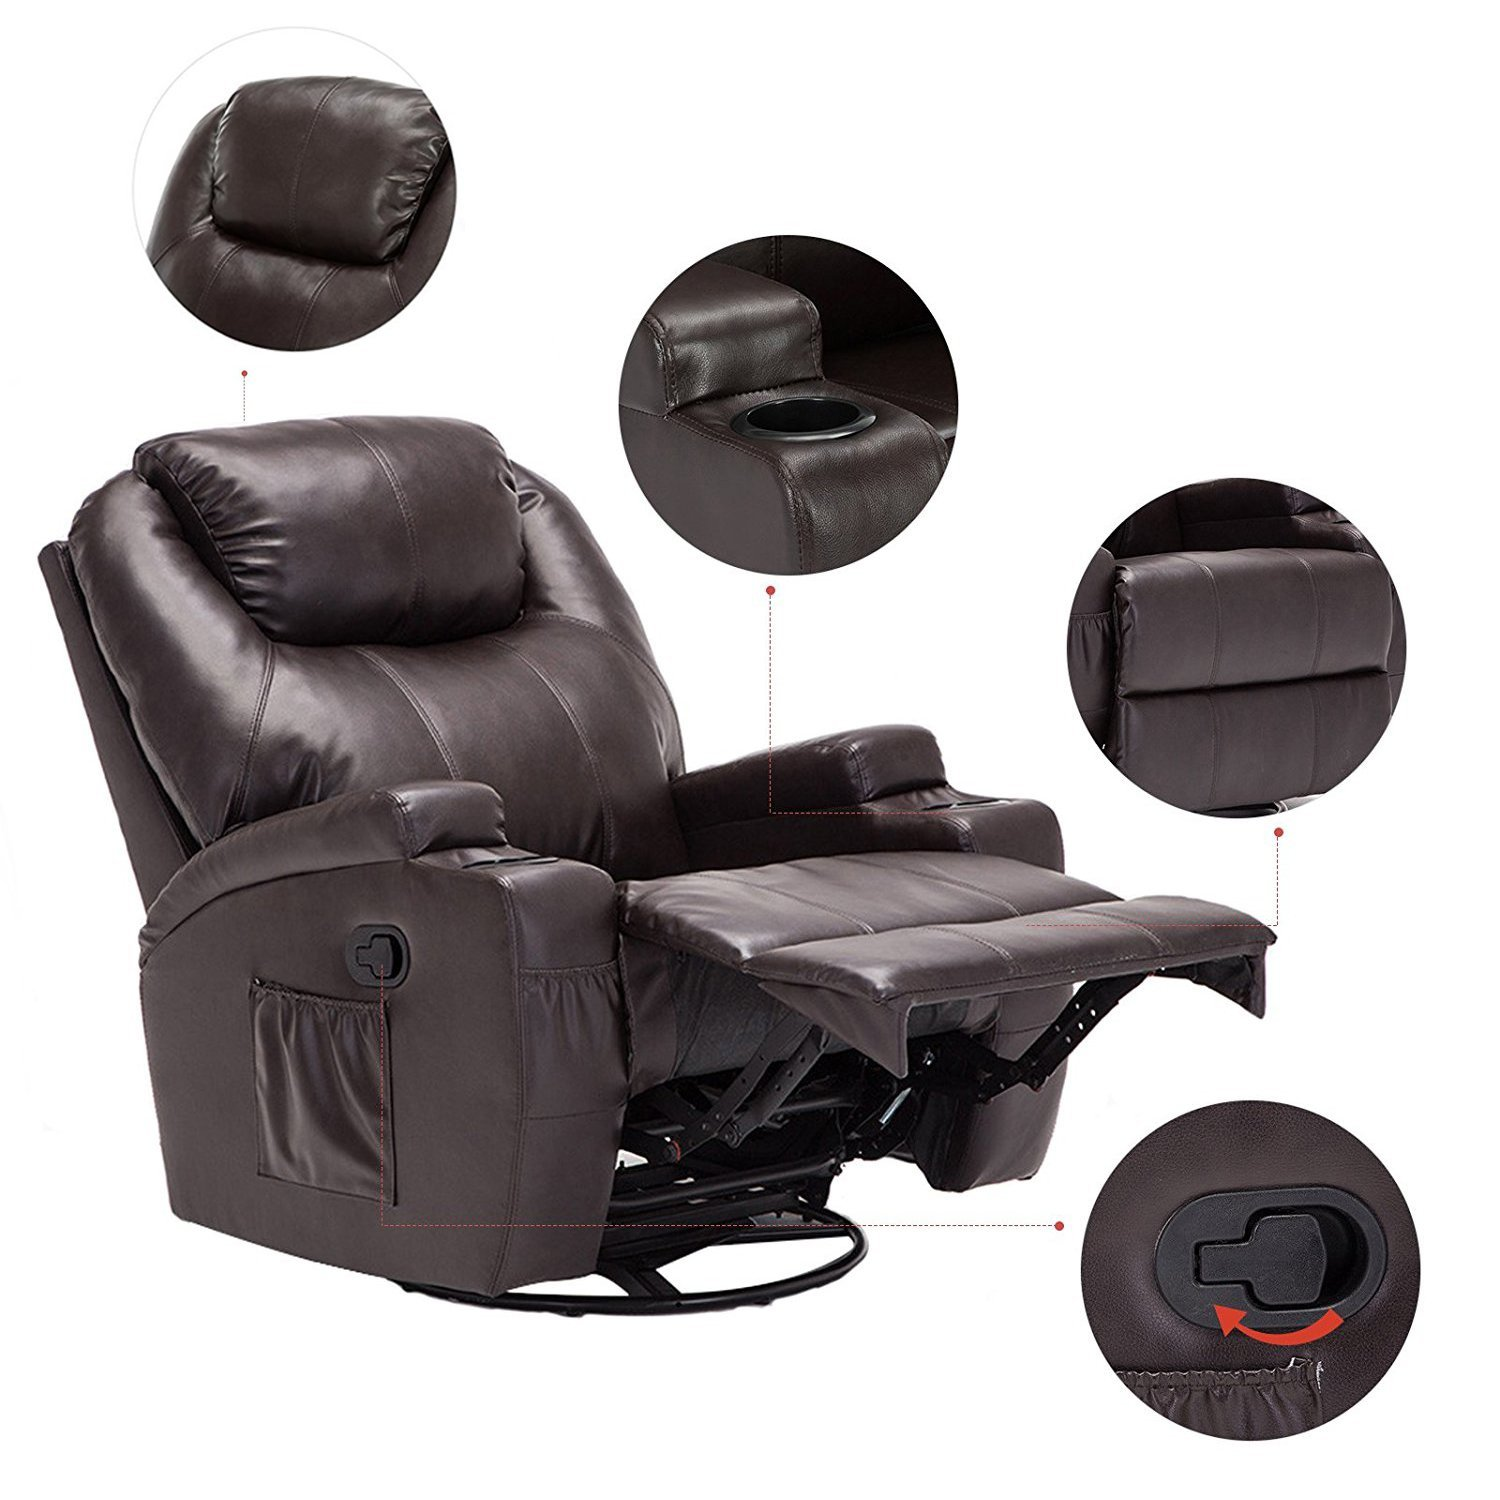 Massage Recliner Chair, 360 Degree Swivel and Heated Recliner Bonded Leather Sofa Chair with 8 Vibration Motors£¬Brown